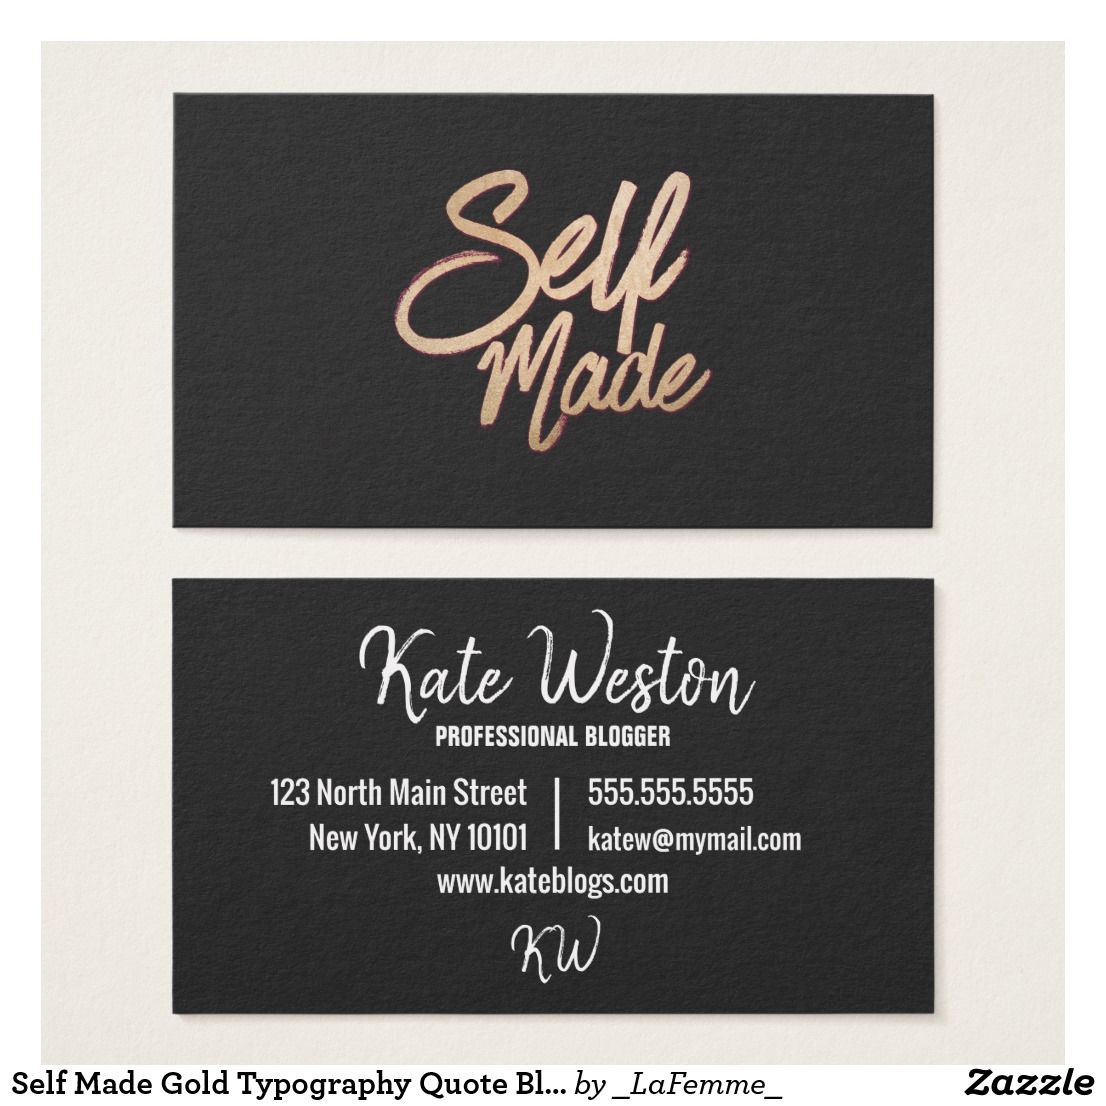 Self Made Gold Typography Quote Black Business Card | Typography quotes